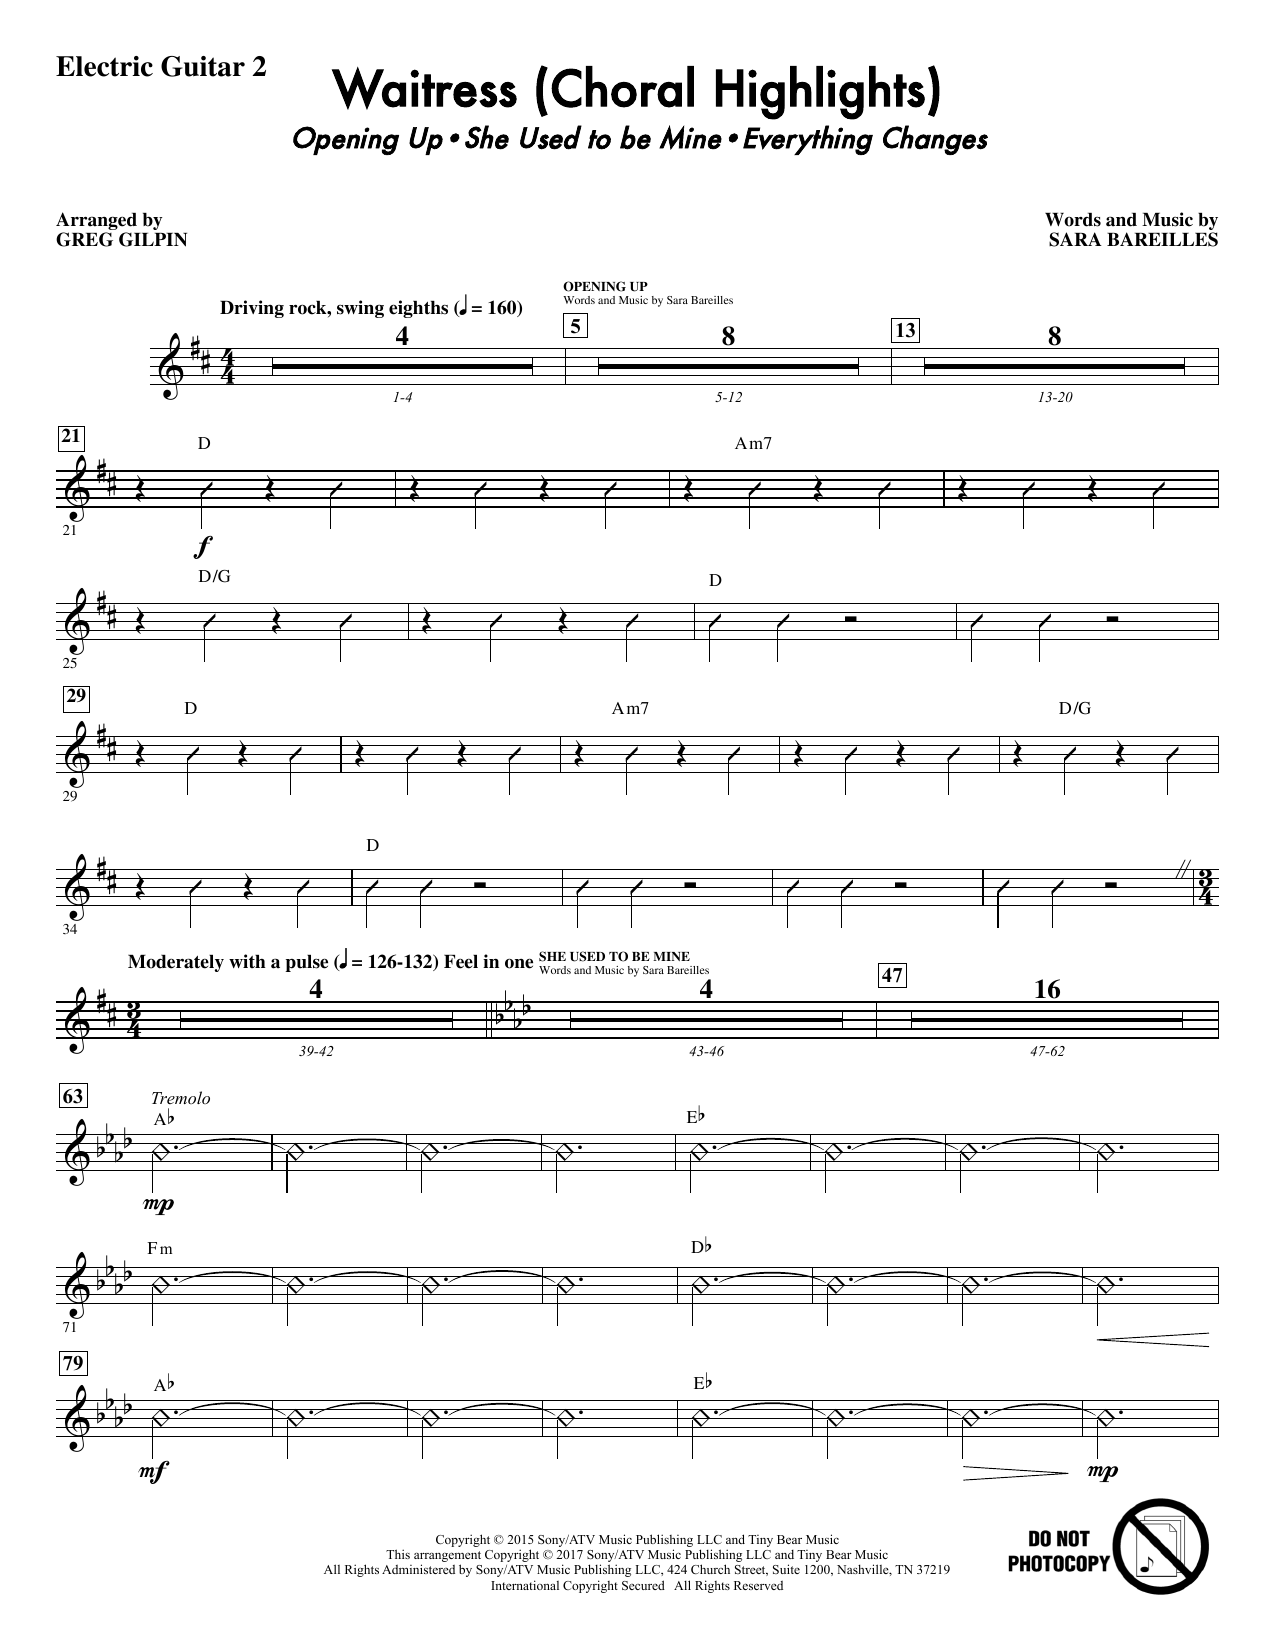 Waitress (Choral Highlights) - Guitar 2 Sheet Music